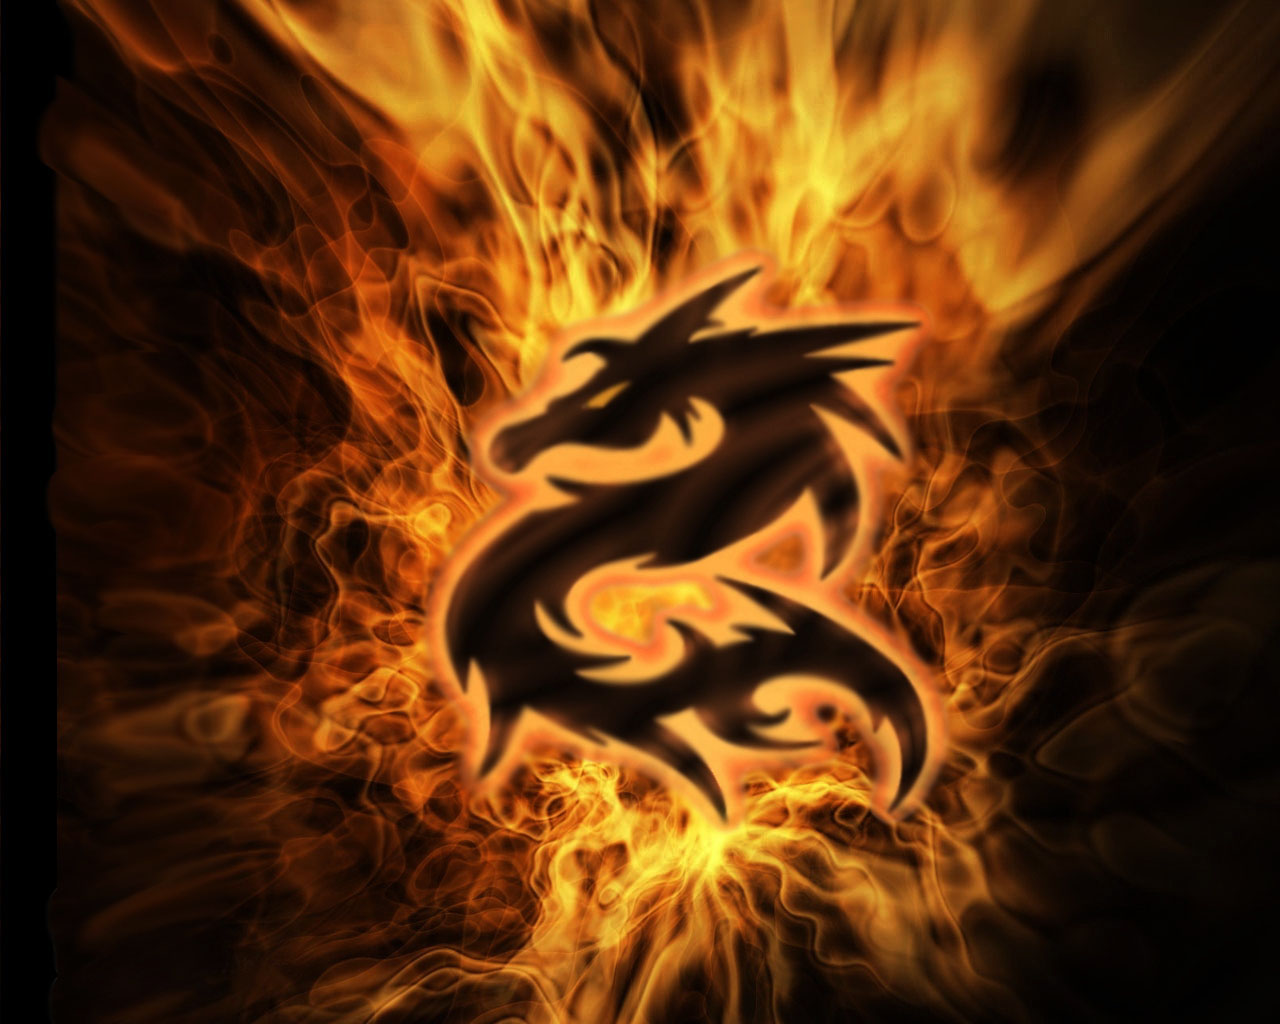 Pictures Dragon on fire 3d pictures screensavers wallpapers 1280x1024